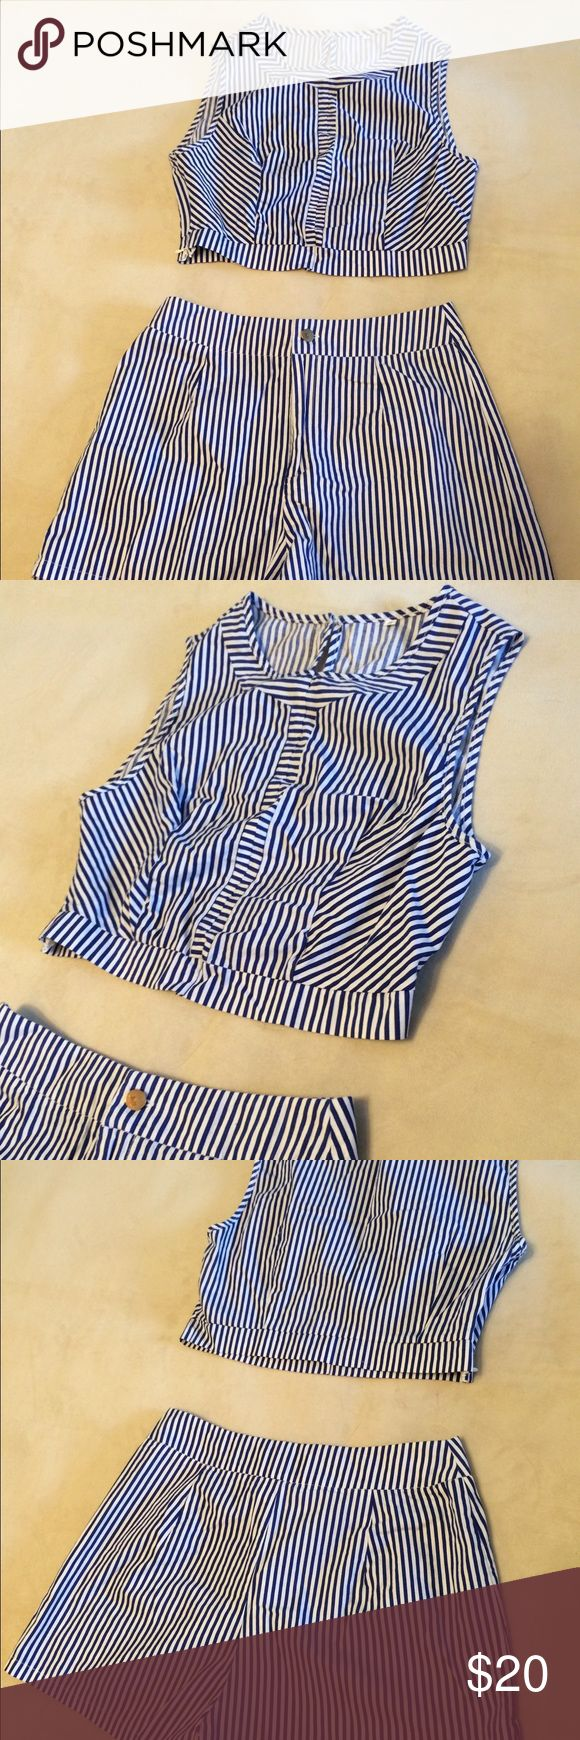 🥝🥂✈️Blue and white stripe two piece Thinner material makes it a great option for a hot day---high waisted shorts, cropped top, both pieces have side zippers (invisible); top is an XS to Small and bottoms are a Small😎will split up💋 Shorts Skorts